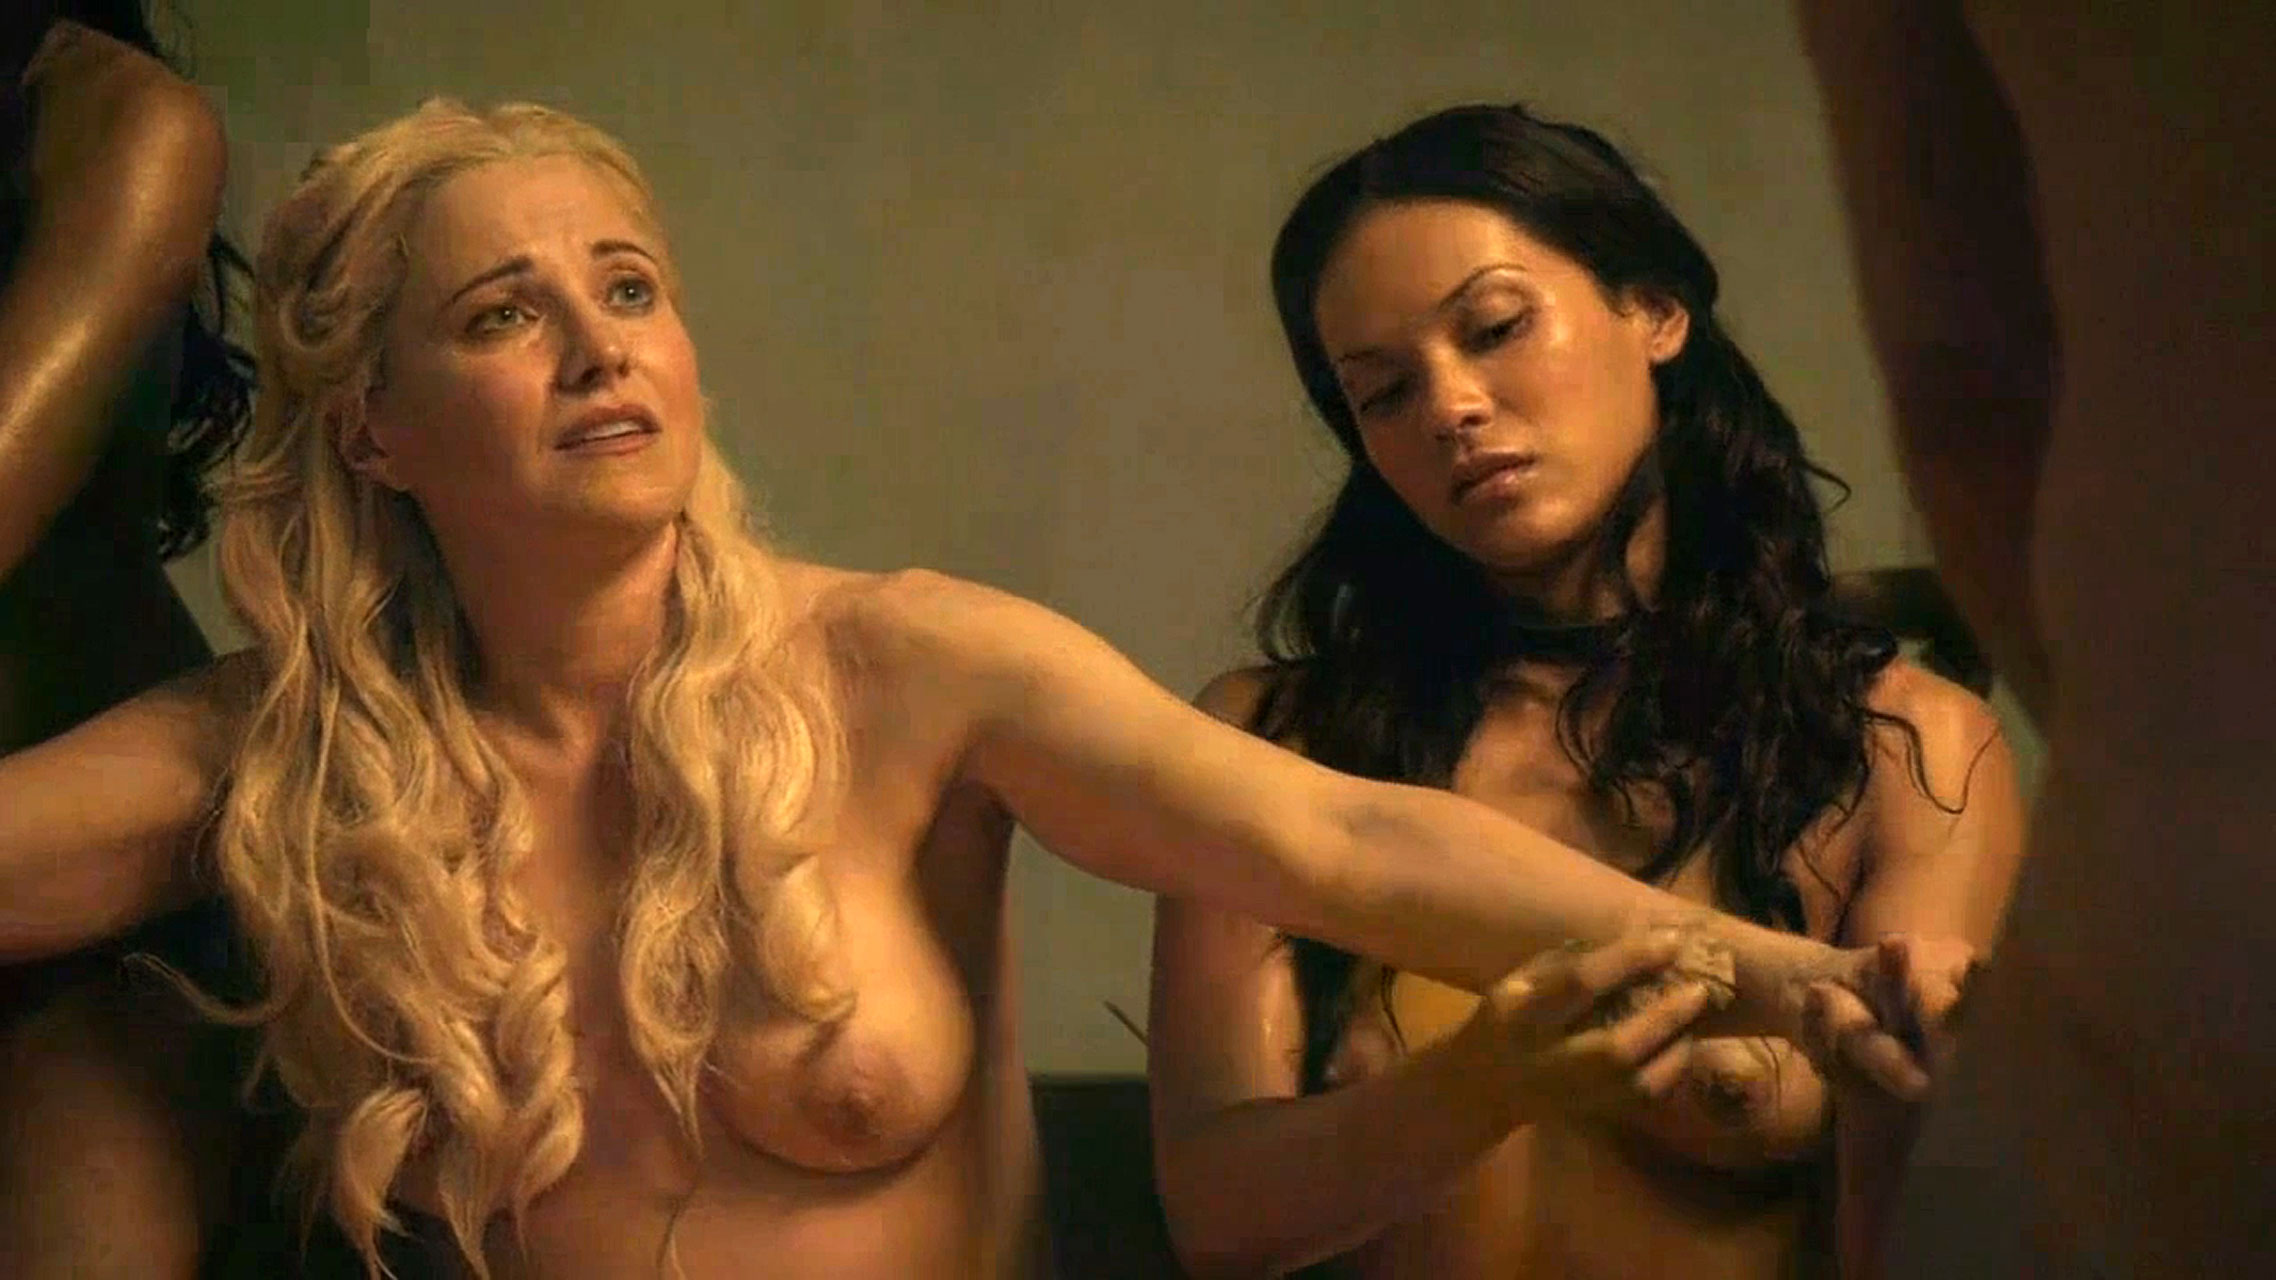 Xena nude scenes movie naked fetish sluts